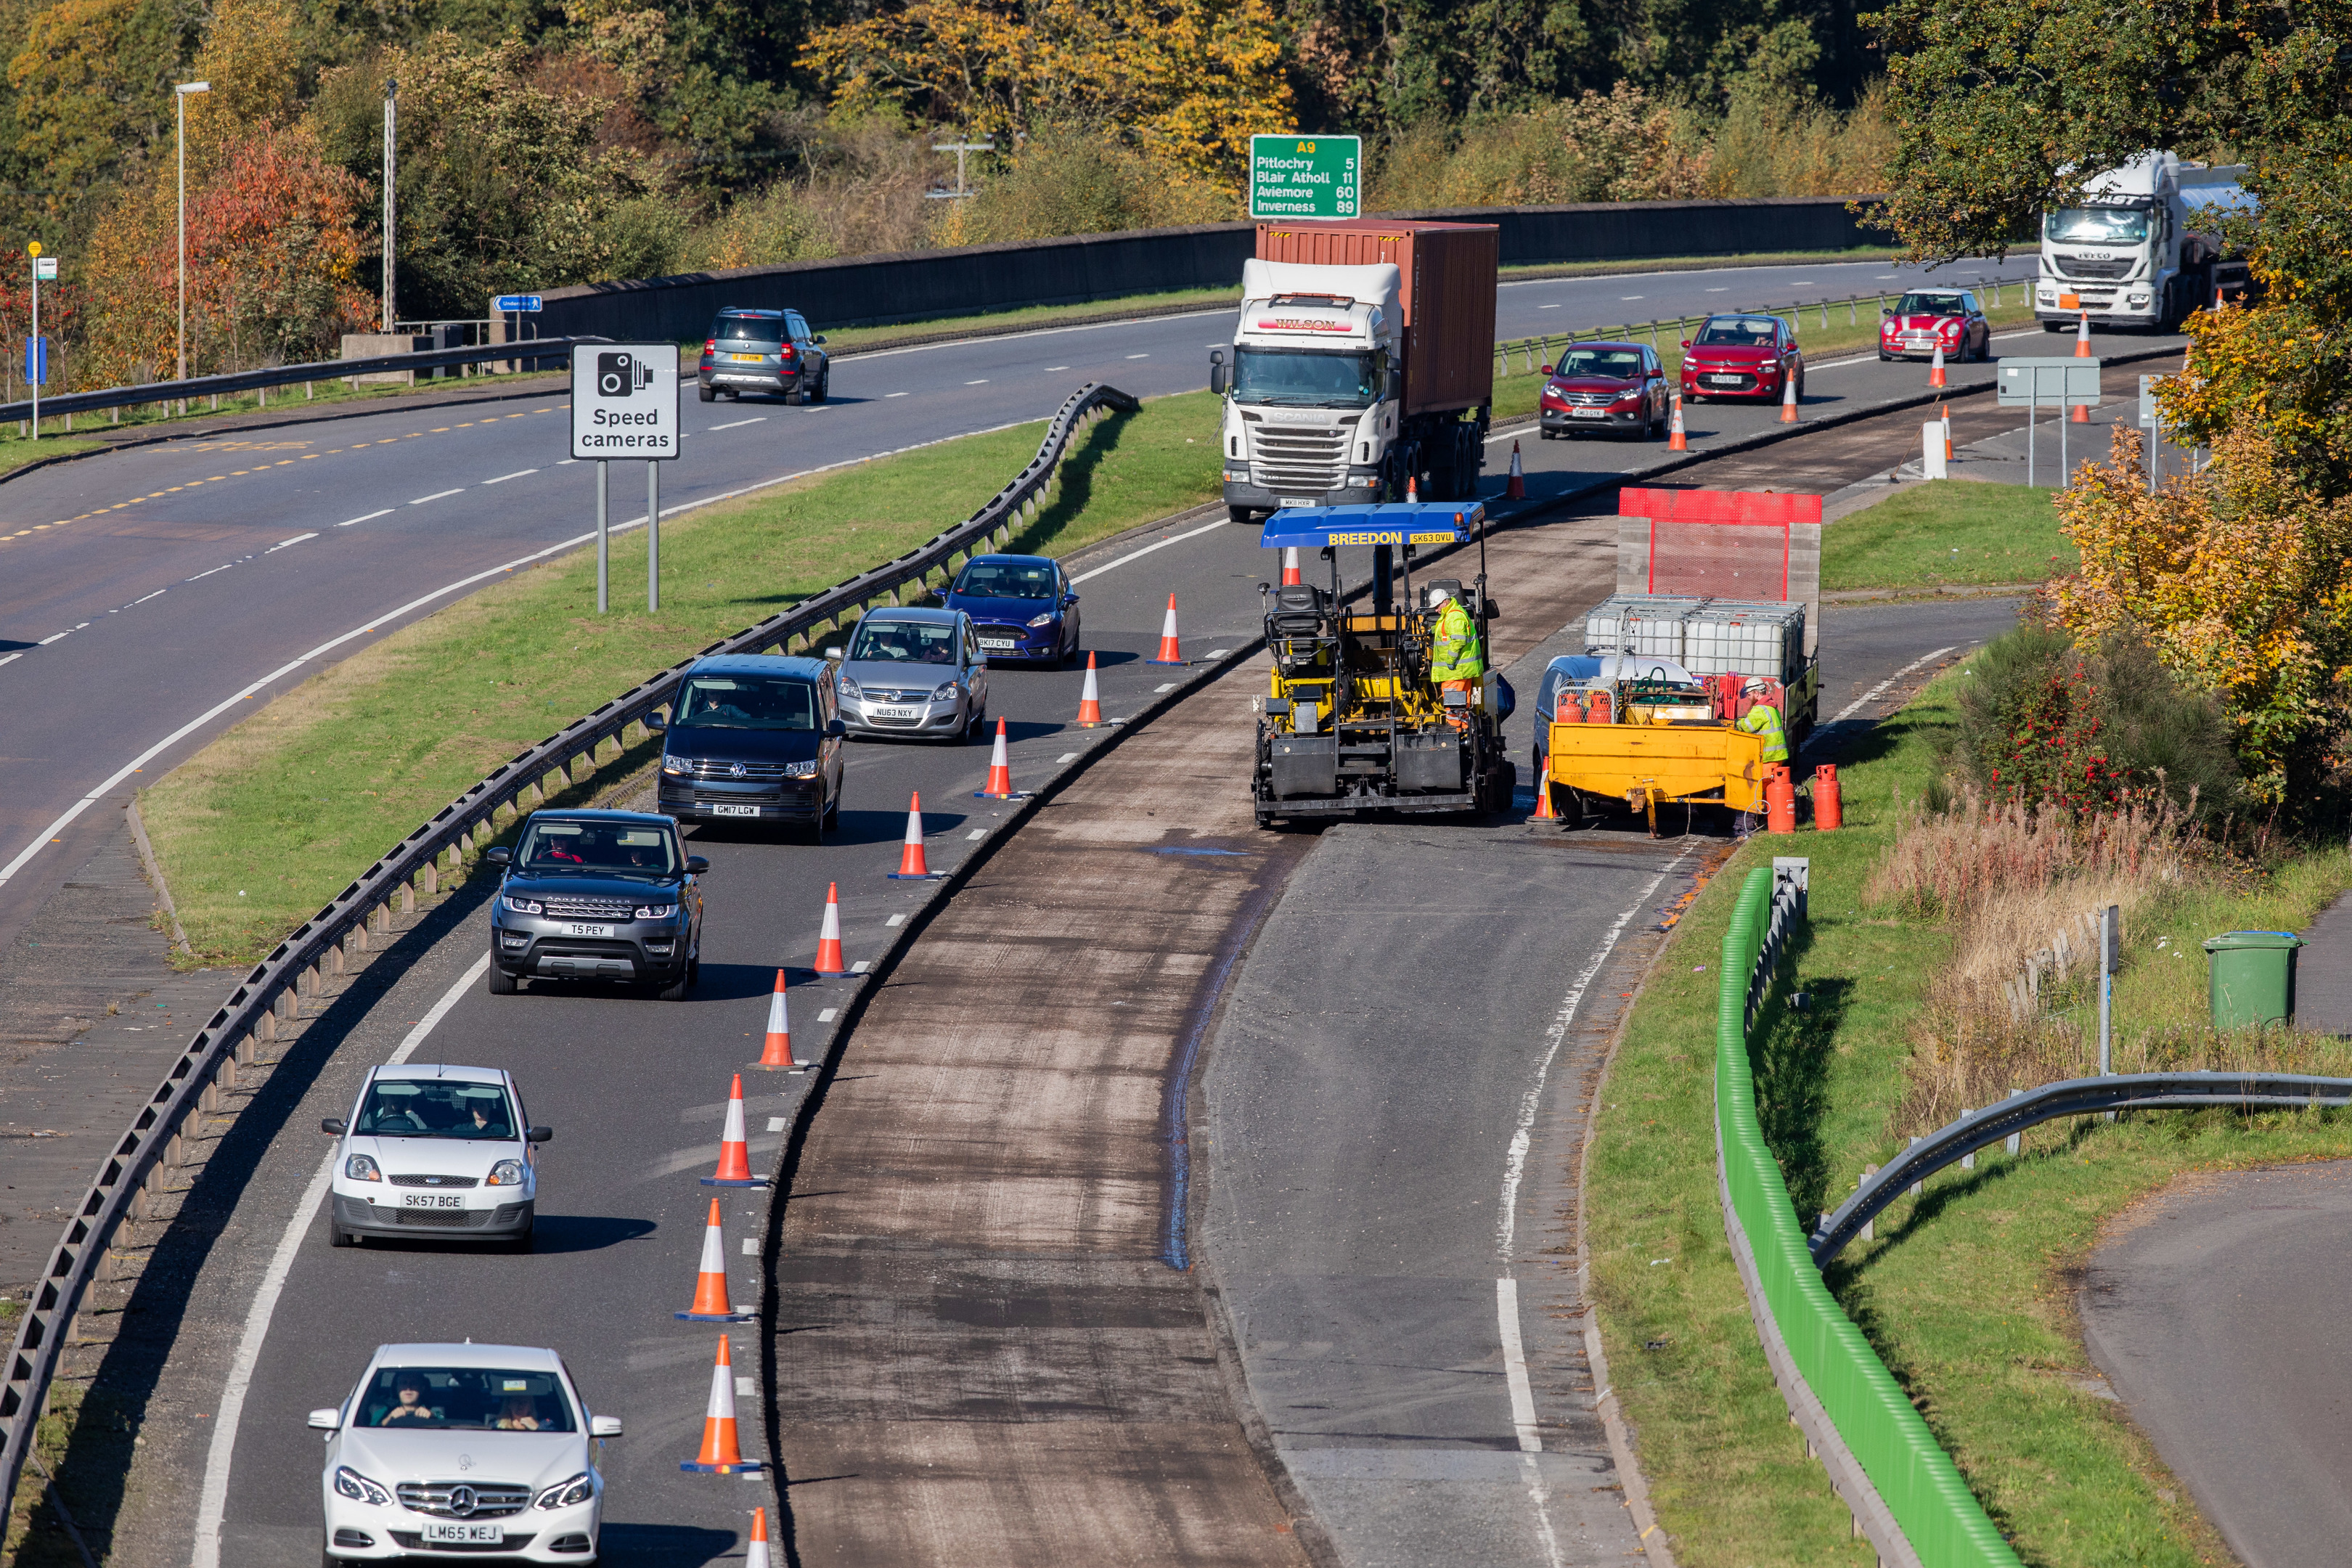 The southbound carriageway of the A9 was reduced to one lane.